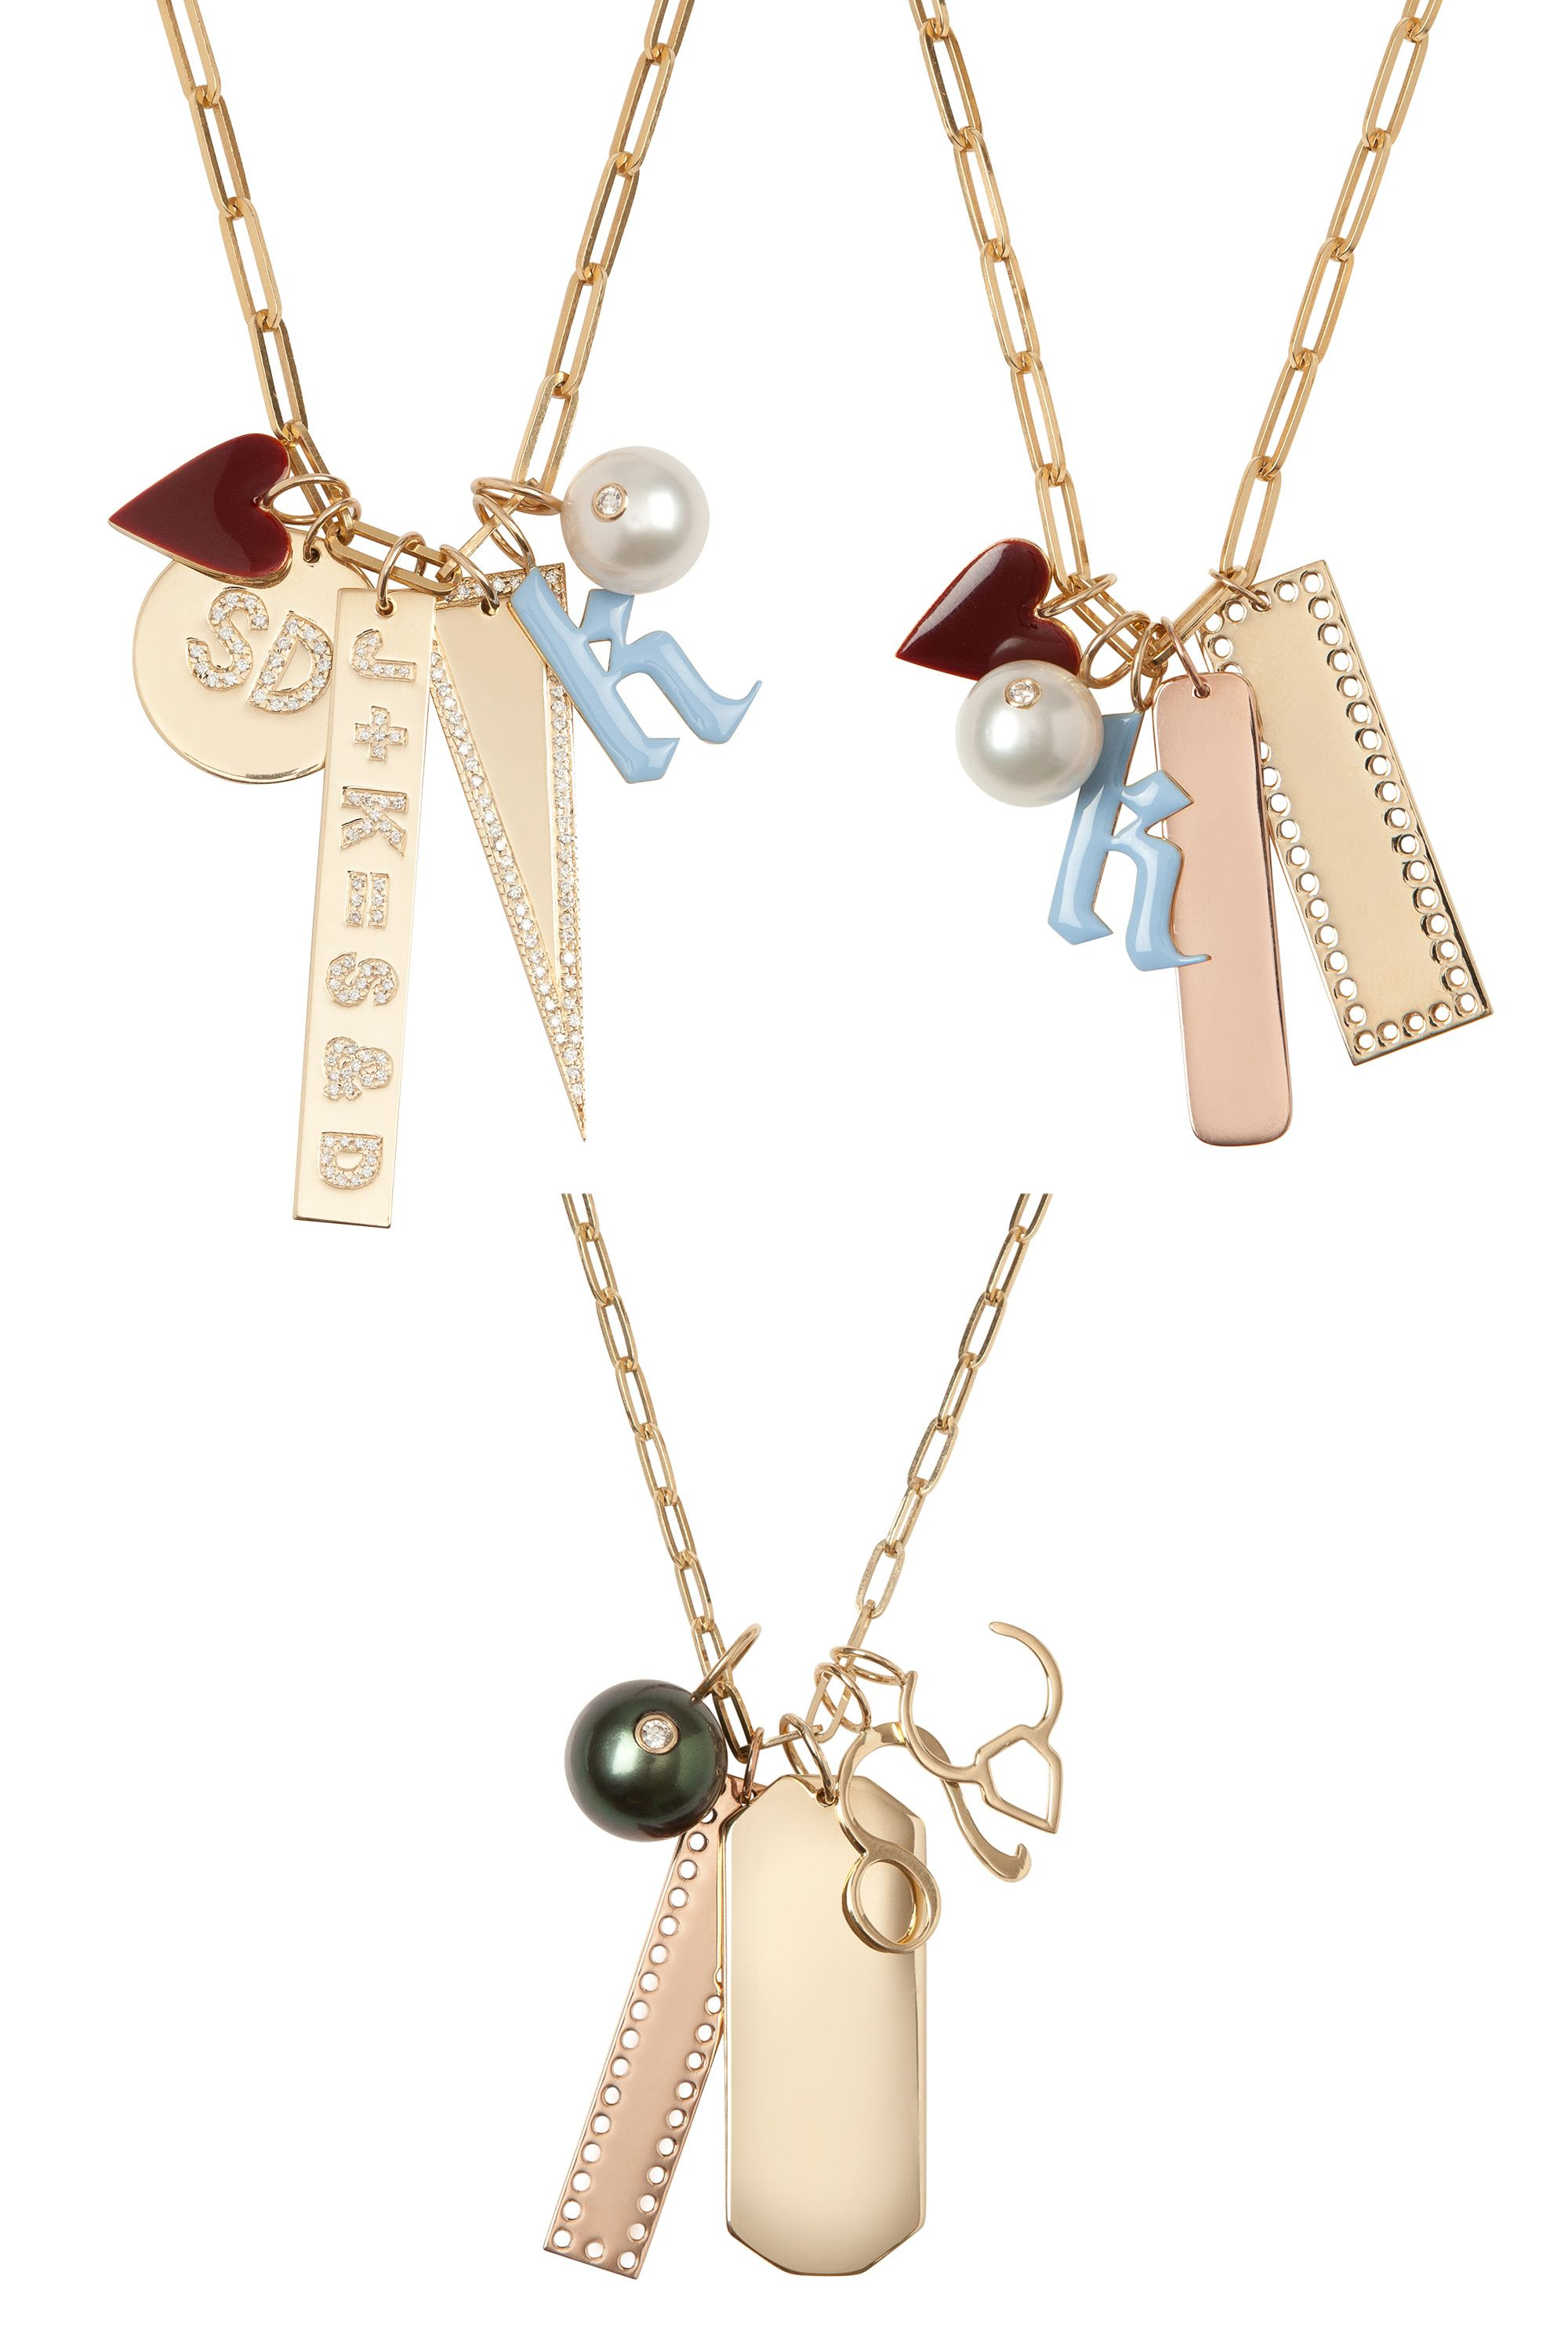 603c67568ce 14 Charm Necklaces to Wear Every Day